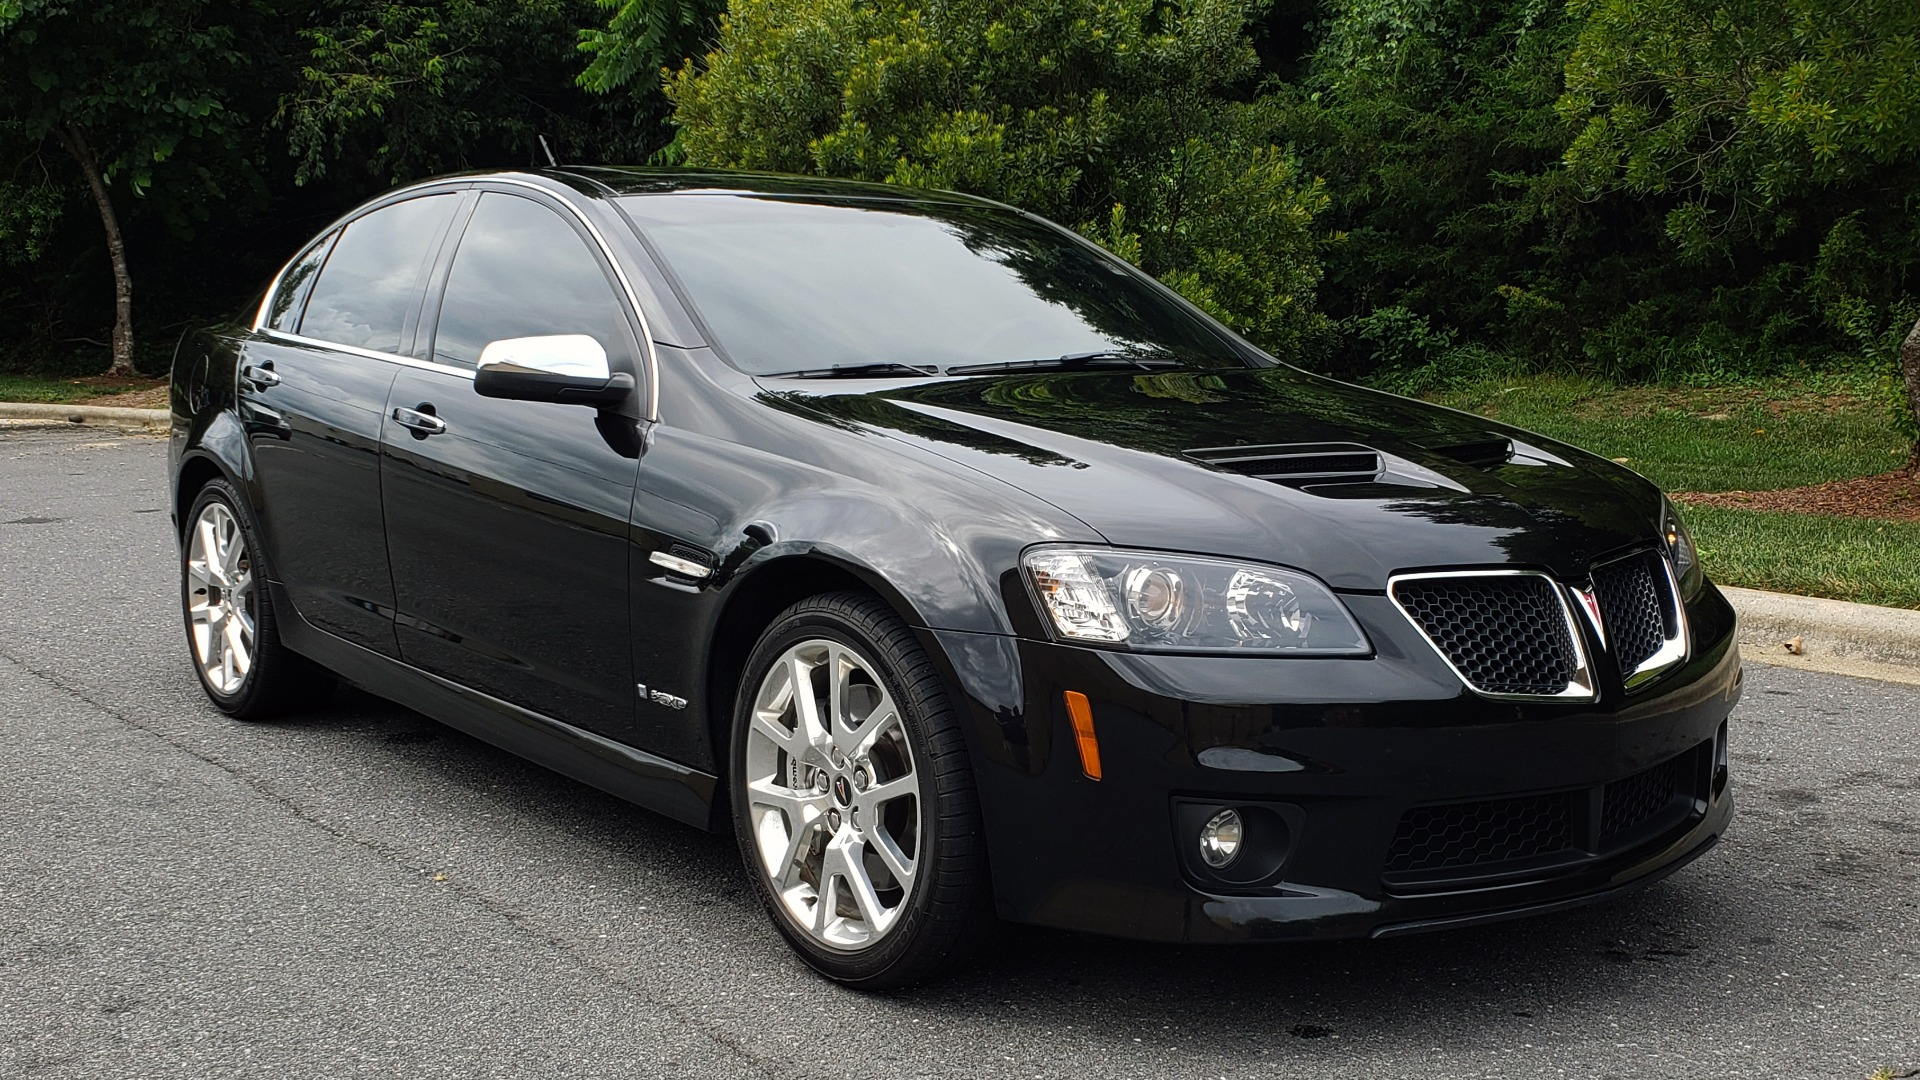 Used 2009 Pontiac G8 GXP / 6.2L LS3 V8 / 6-SPD AUTO / SUNROOF / 19IN WHEELS for sale Sold at Formula Imports in Charlotte NC 28227 8